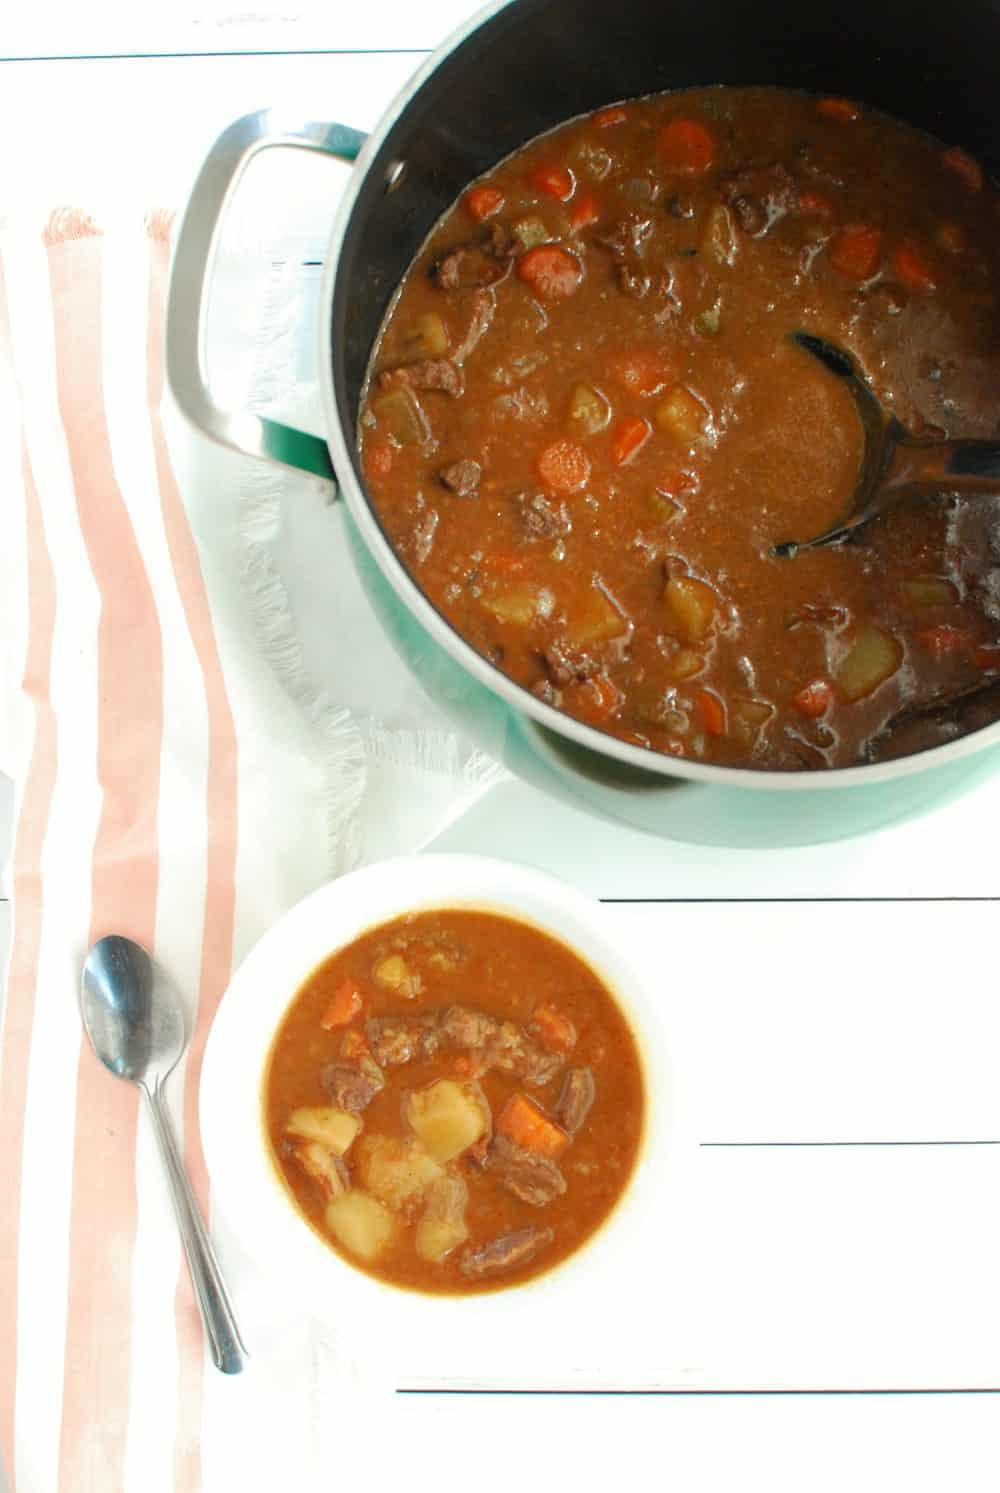 A bowl of beef stew next to a pot full of it.